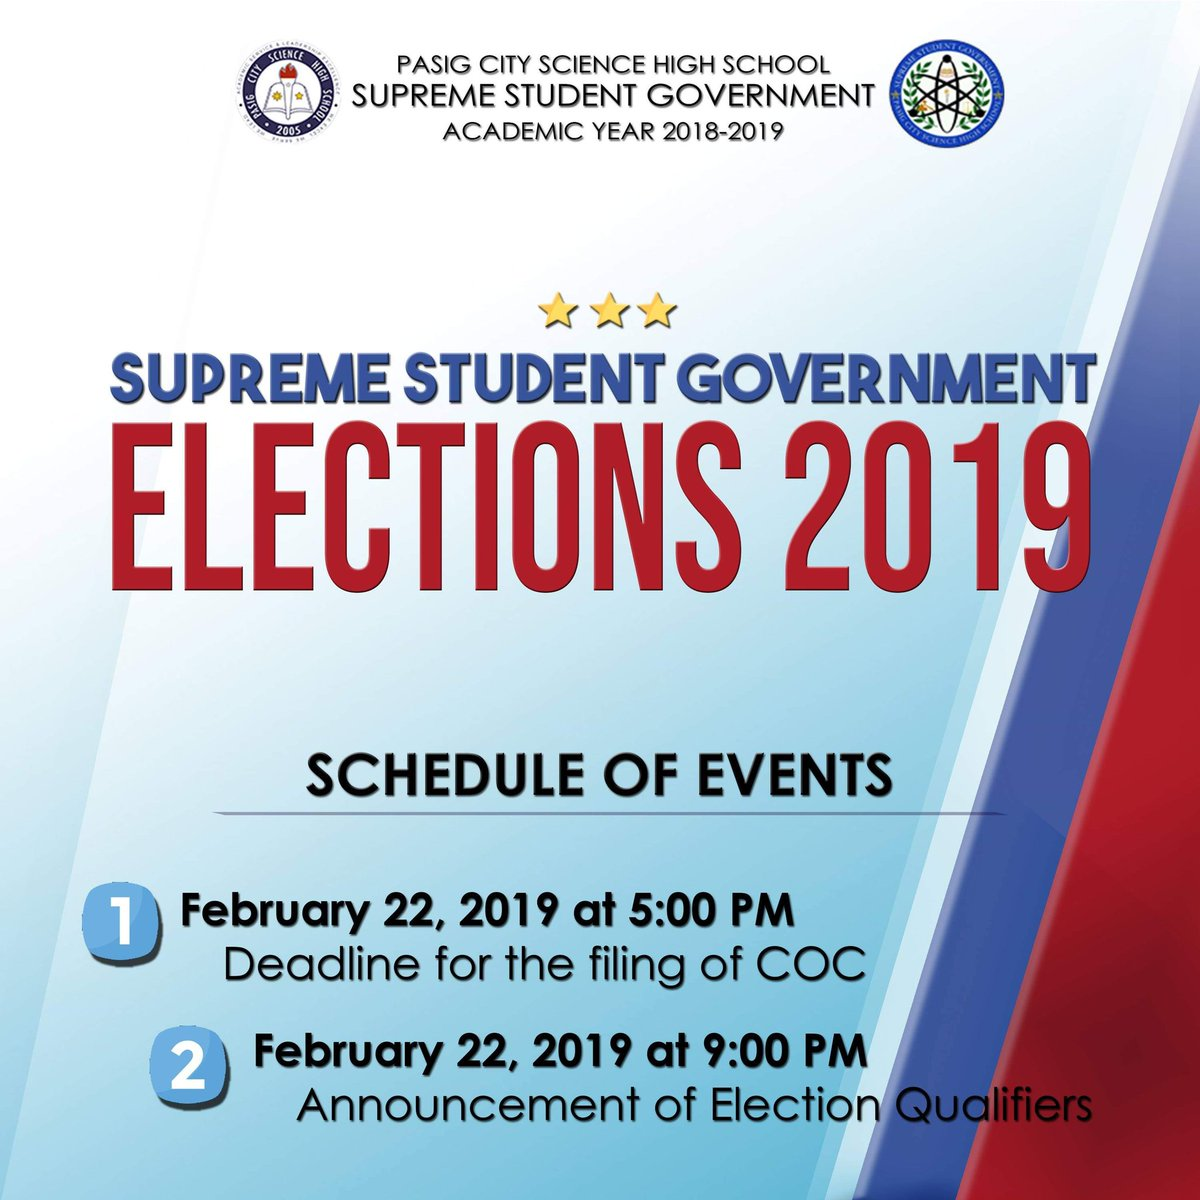 The doors are now open for the next set of student leaders that will serve the student body! Be part of the Supreme Student Government for the upcoming academic year 2019-2020. Check the attached link for the Election Guidelines and Requirements. https://drive.google.com/folderview?id=1-07YDKmB8FI3xB6jKjyVh75c6tEeK4ff …